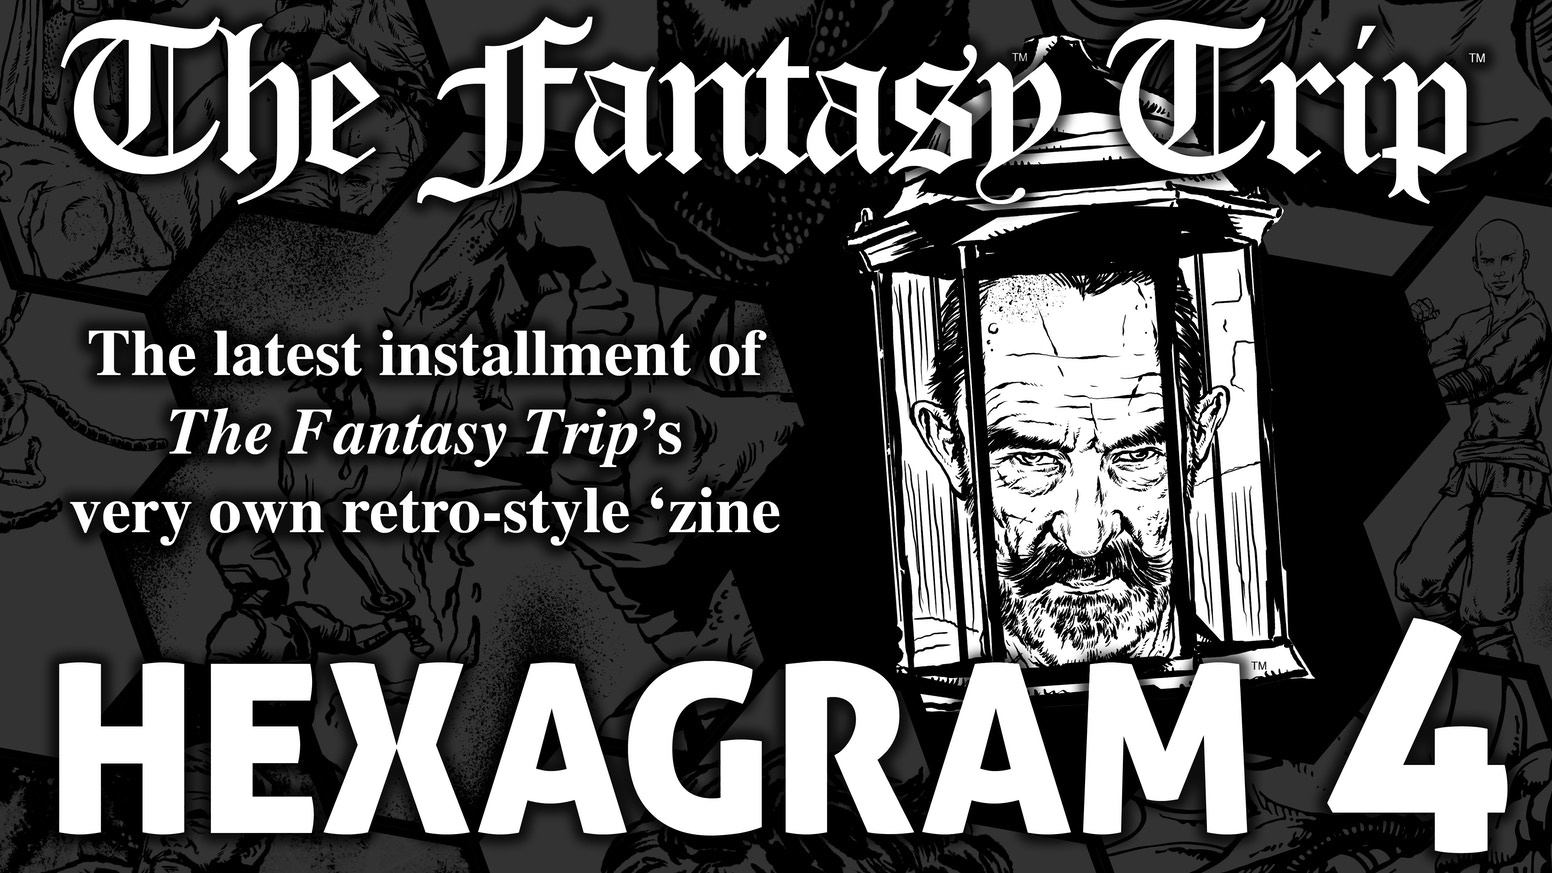 A retro-style collection of articles for and about The Fantasy Trip.